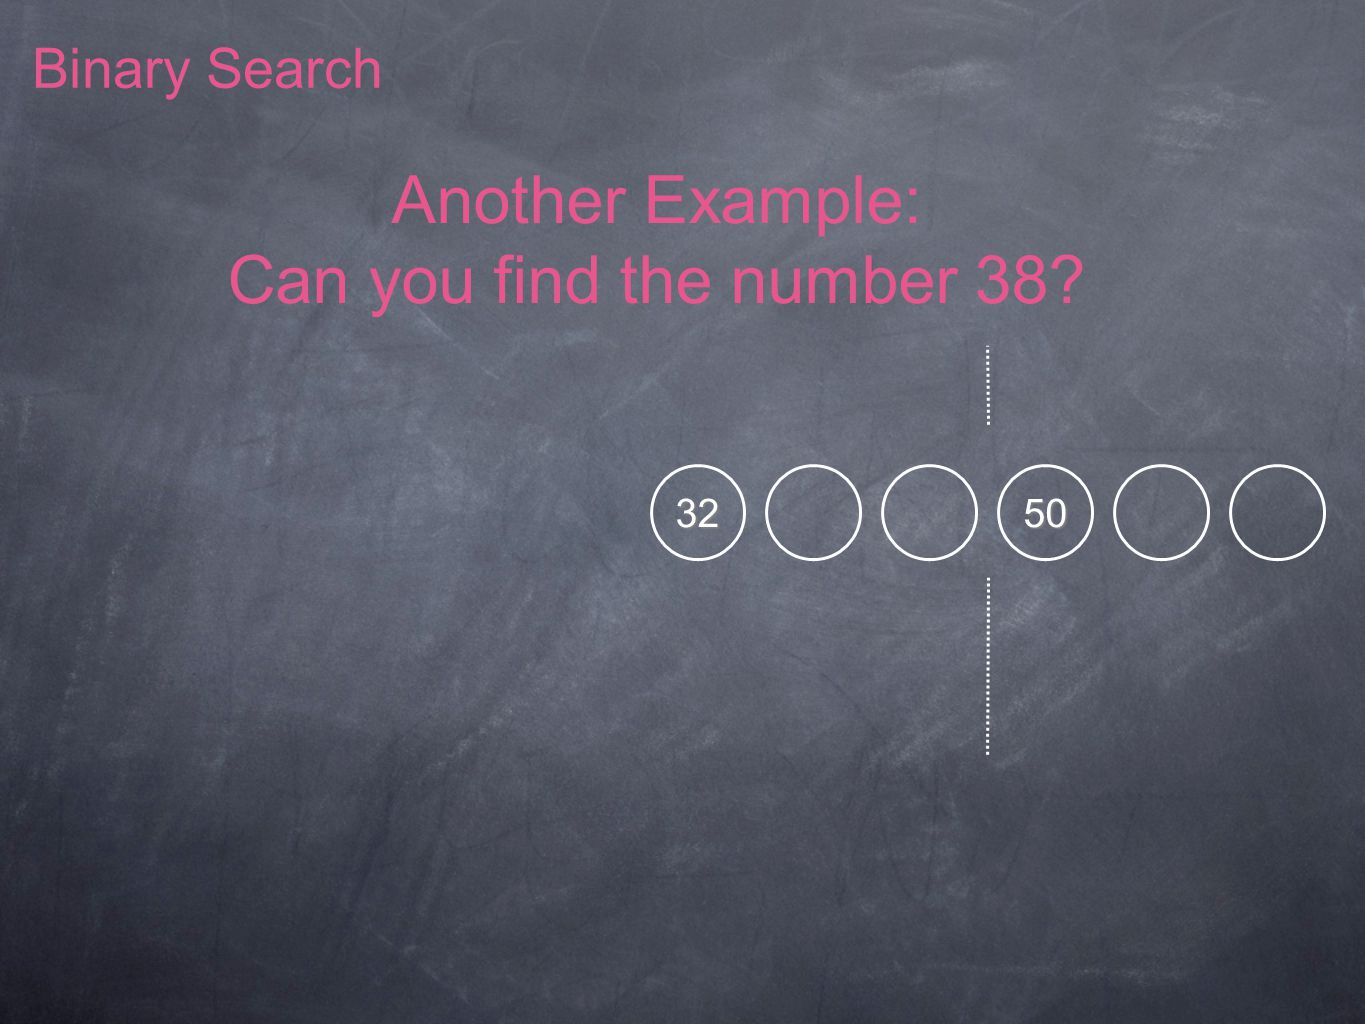 3250 Binary Search Another Example: Can you find the number 38?